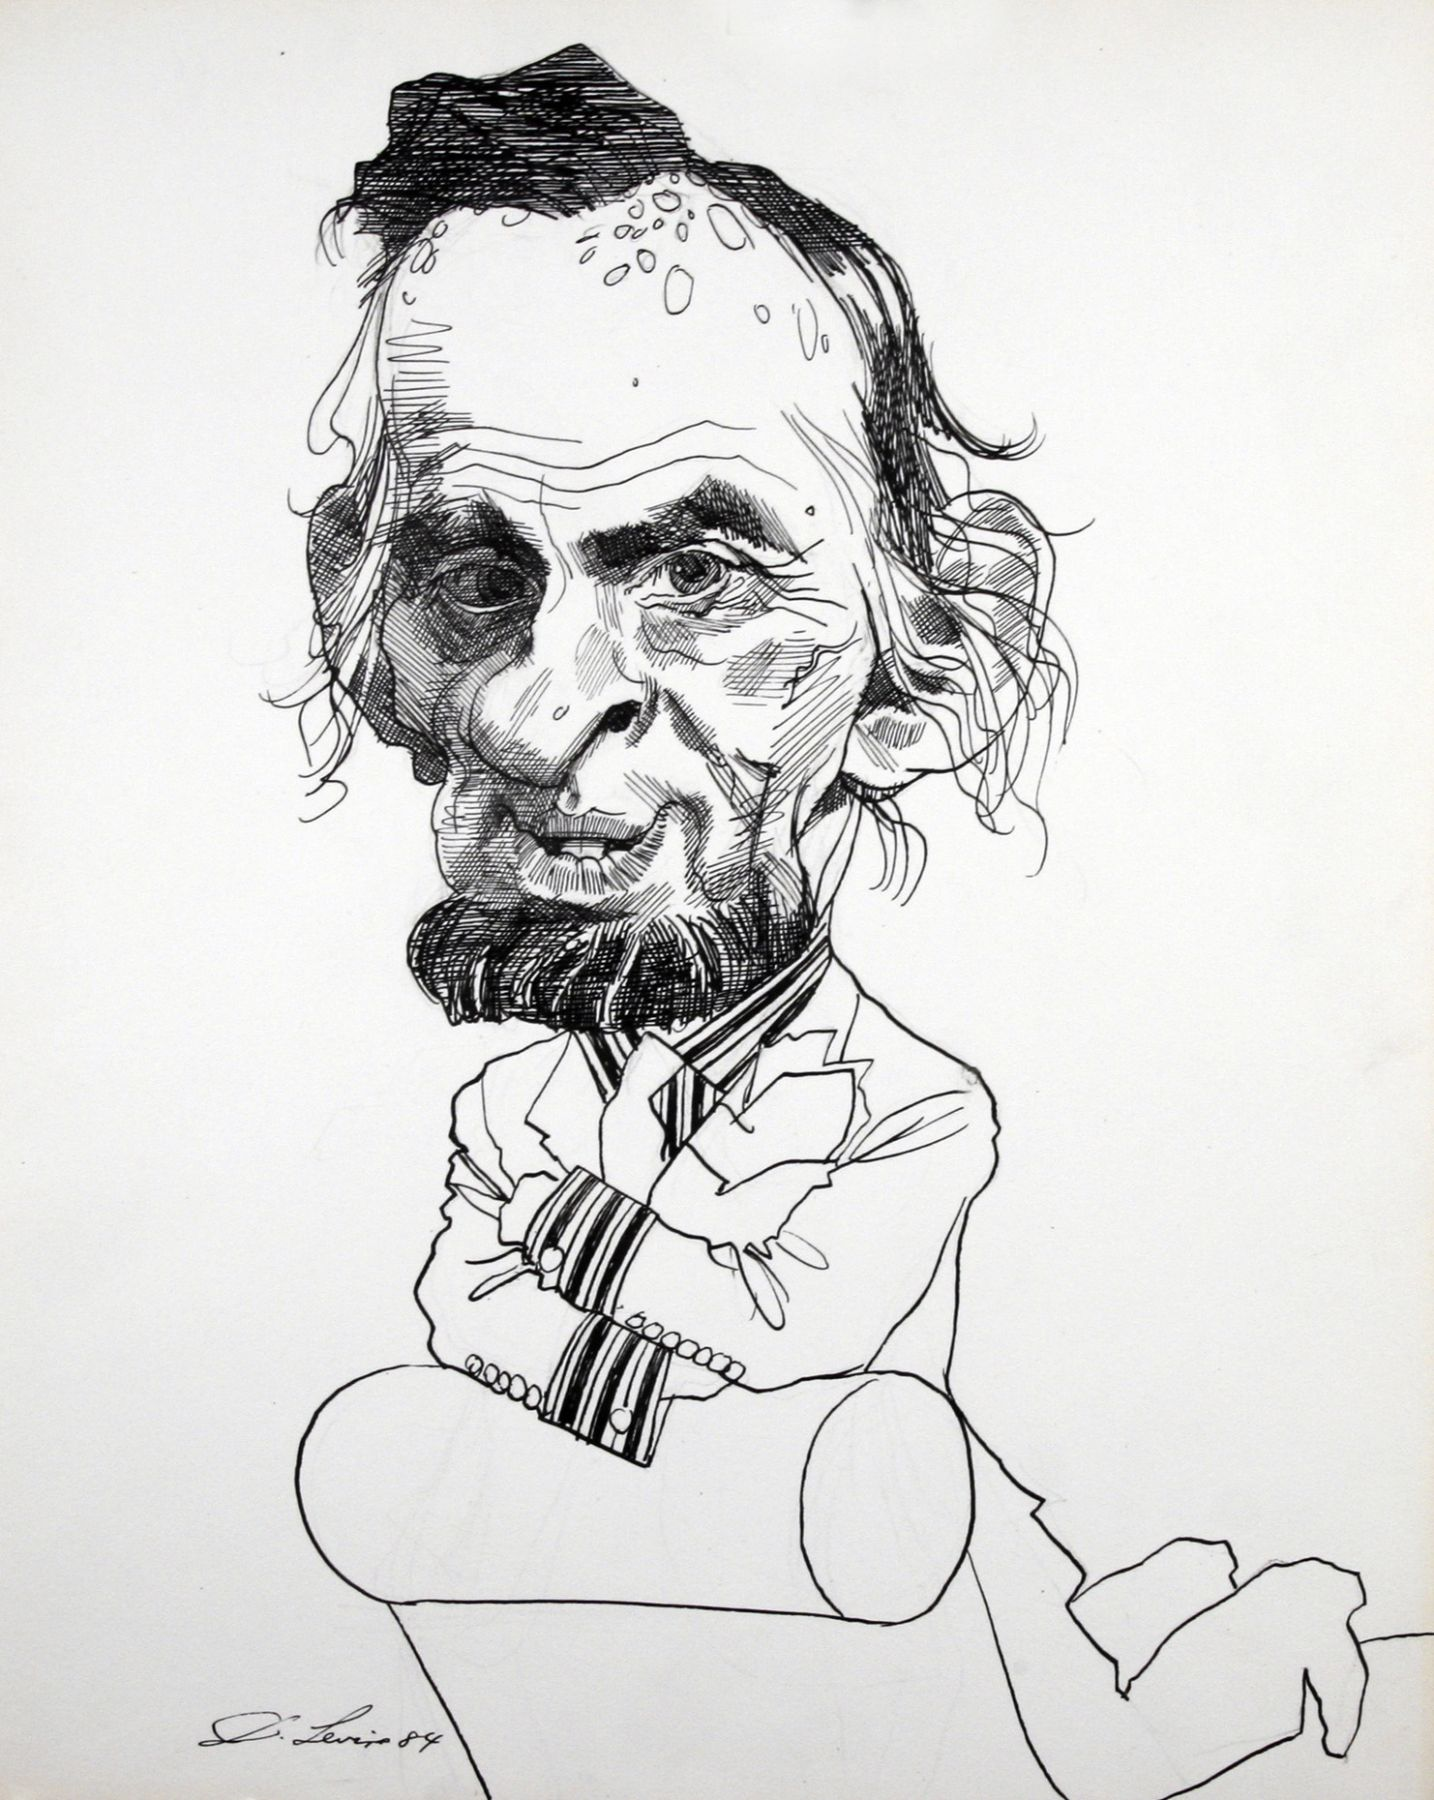 David Levine, Abraham Lincoln, 1984, ink on paper, 13 1/2 x 11 inches